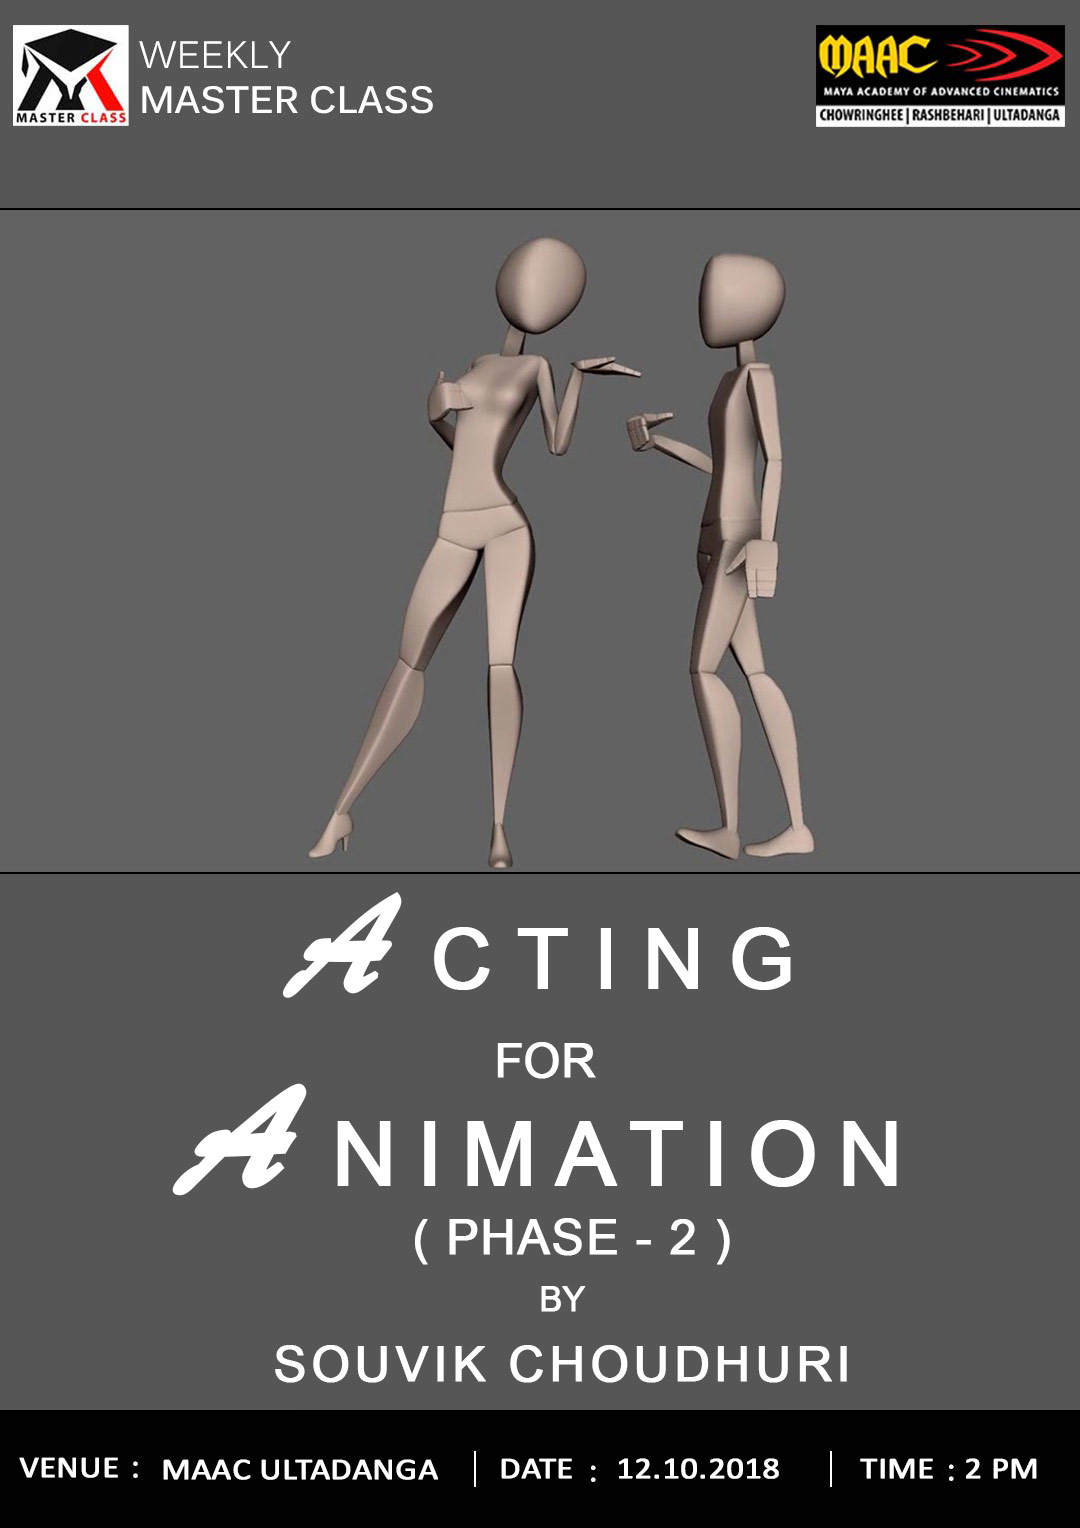 Weekly Master Class on Acting for Animation Phase- 2